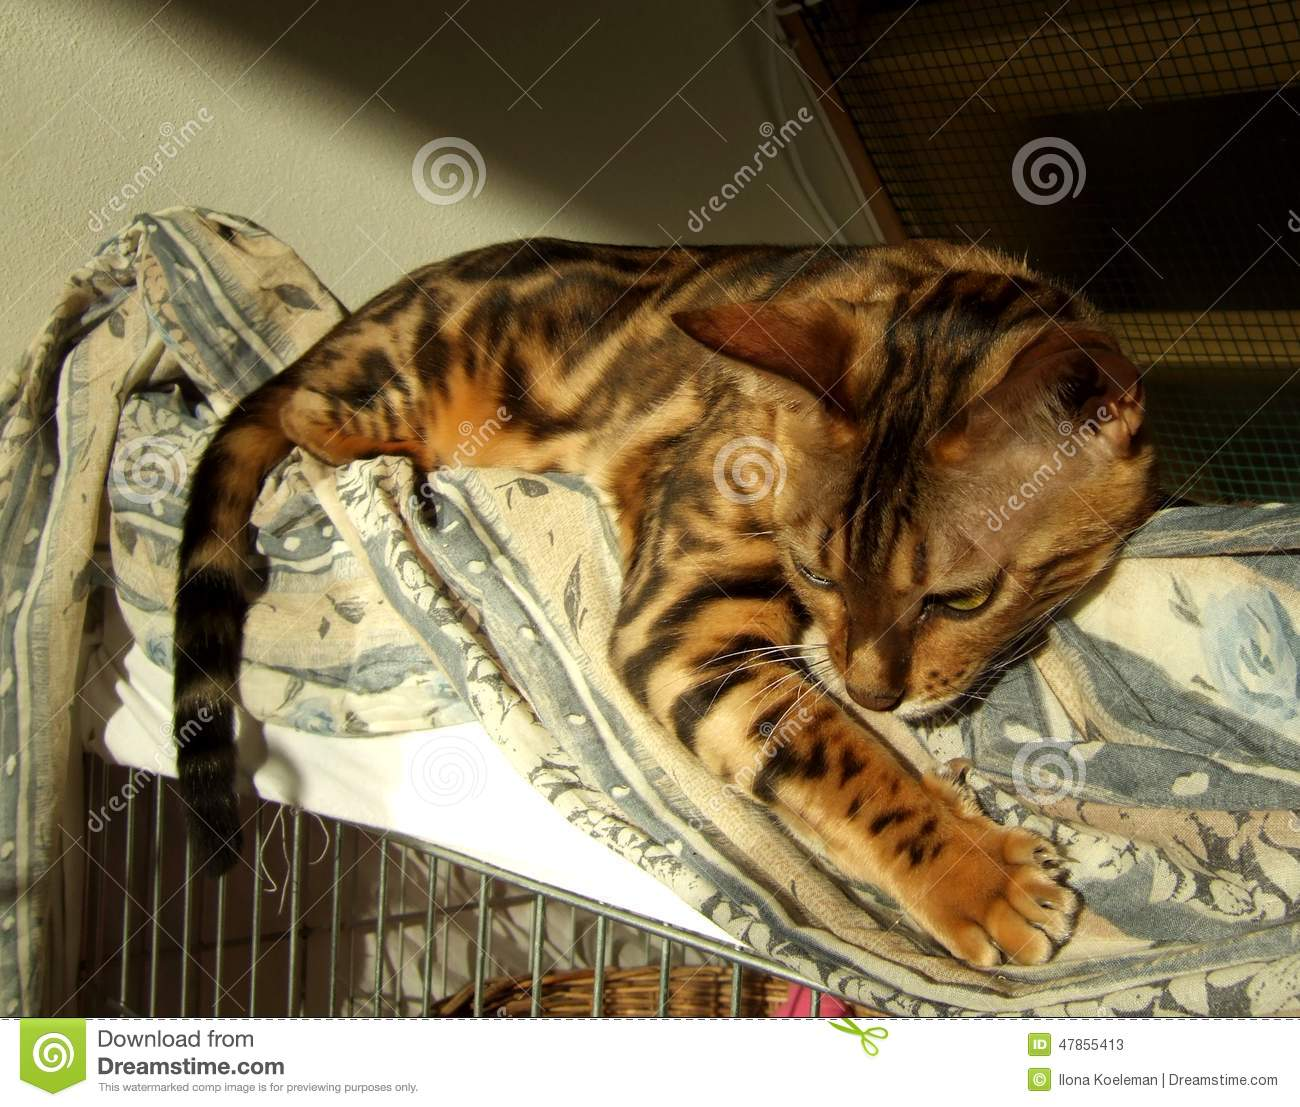 650bd3f741 Bengal Cat  Marble Bengal Cat Relaxing Stock Image - Image of adult ...